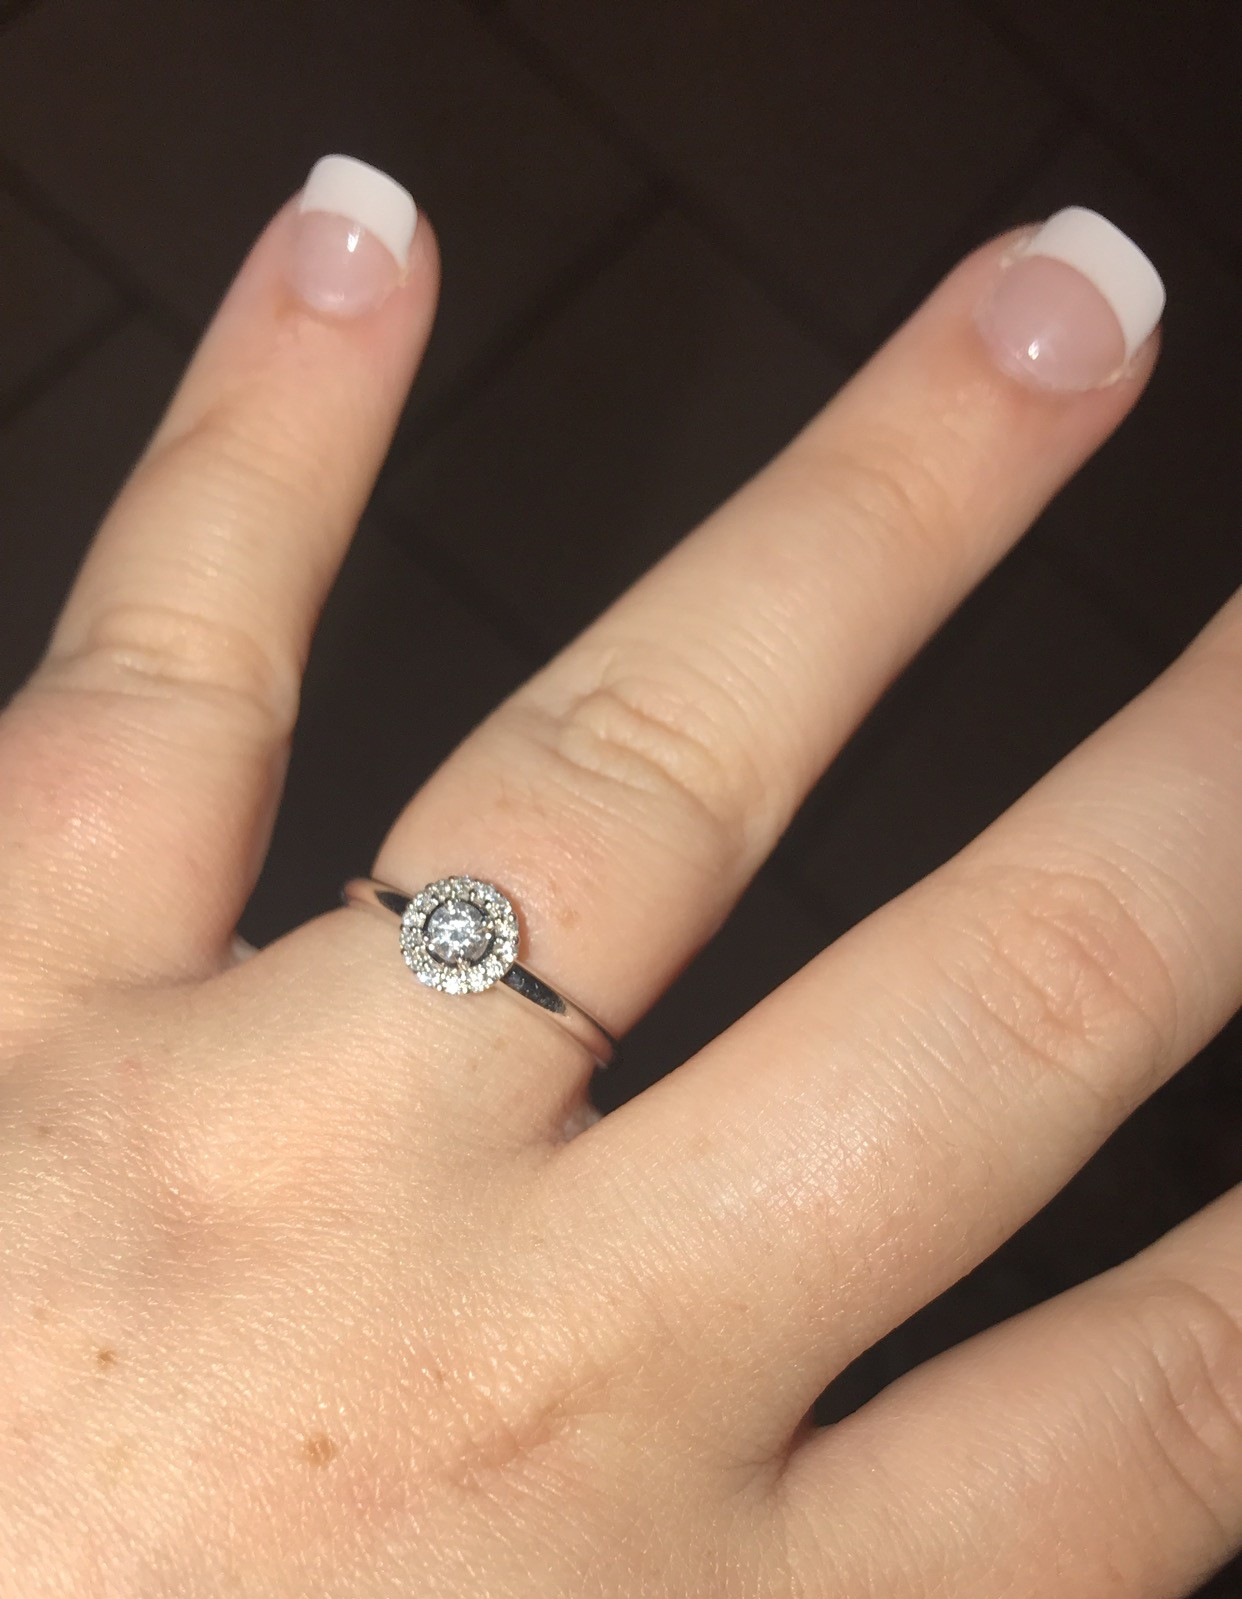 Kailey's Engagement Ring